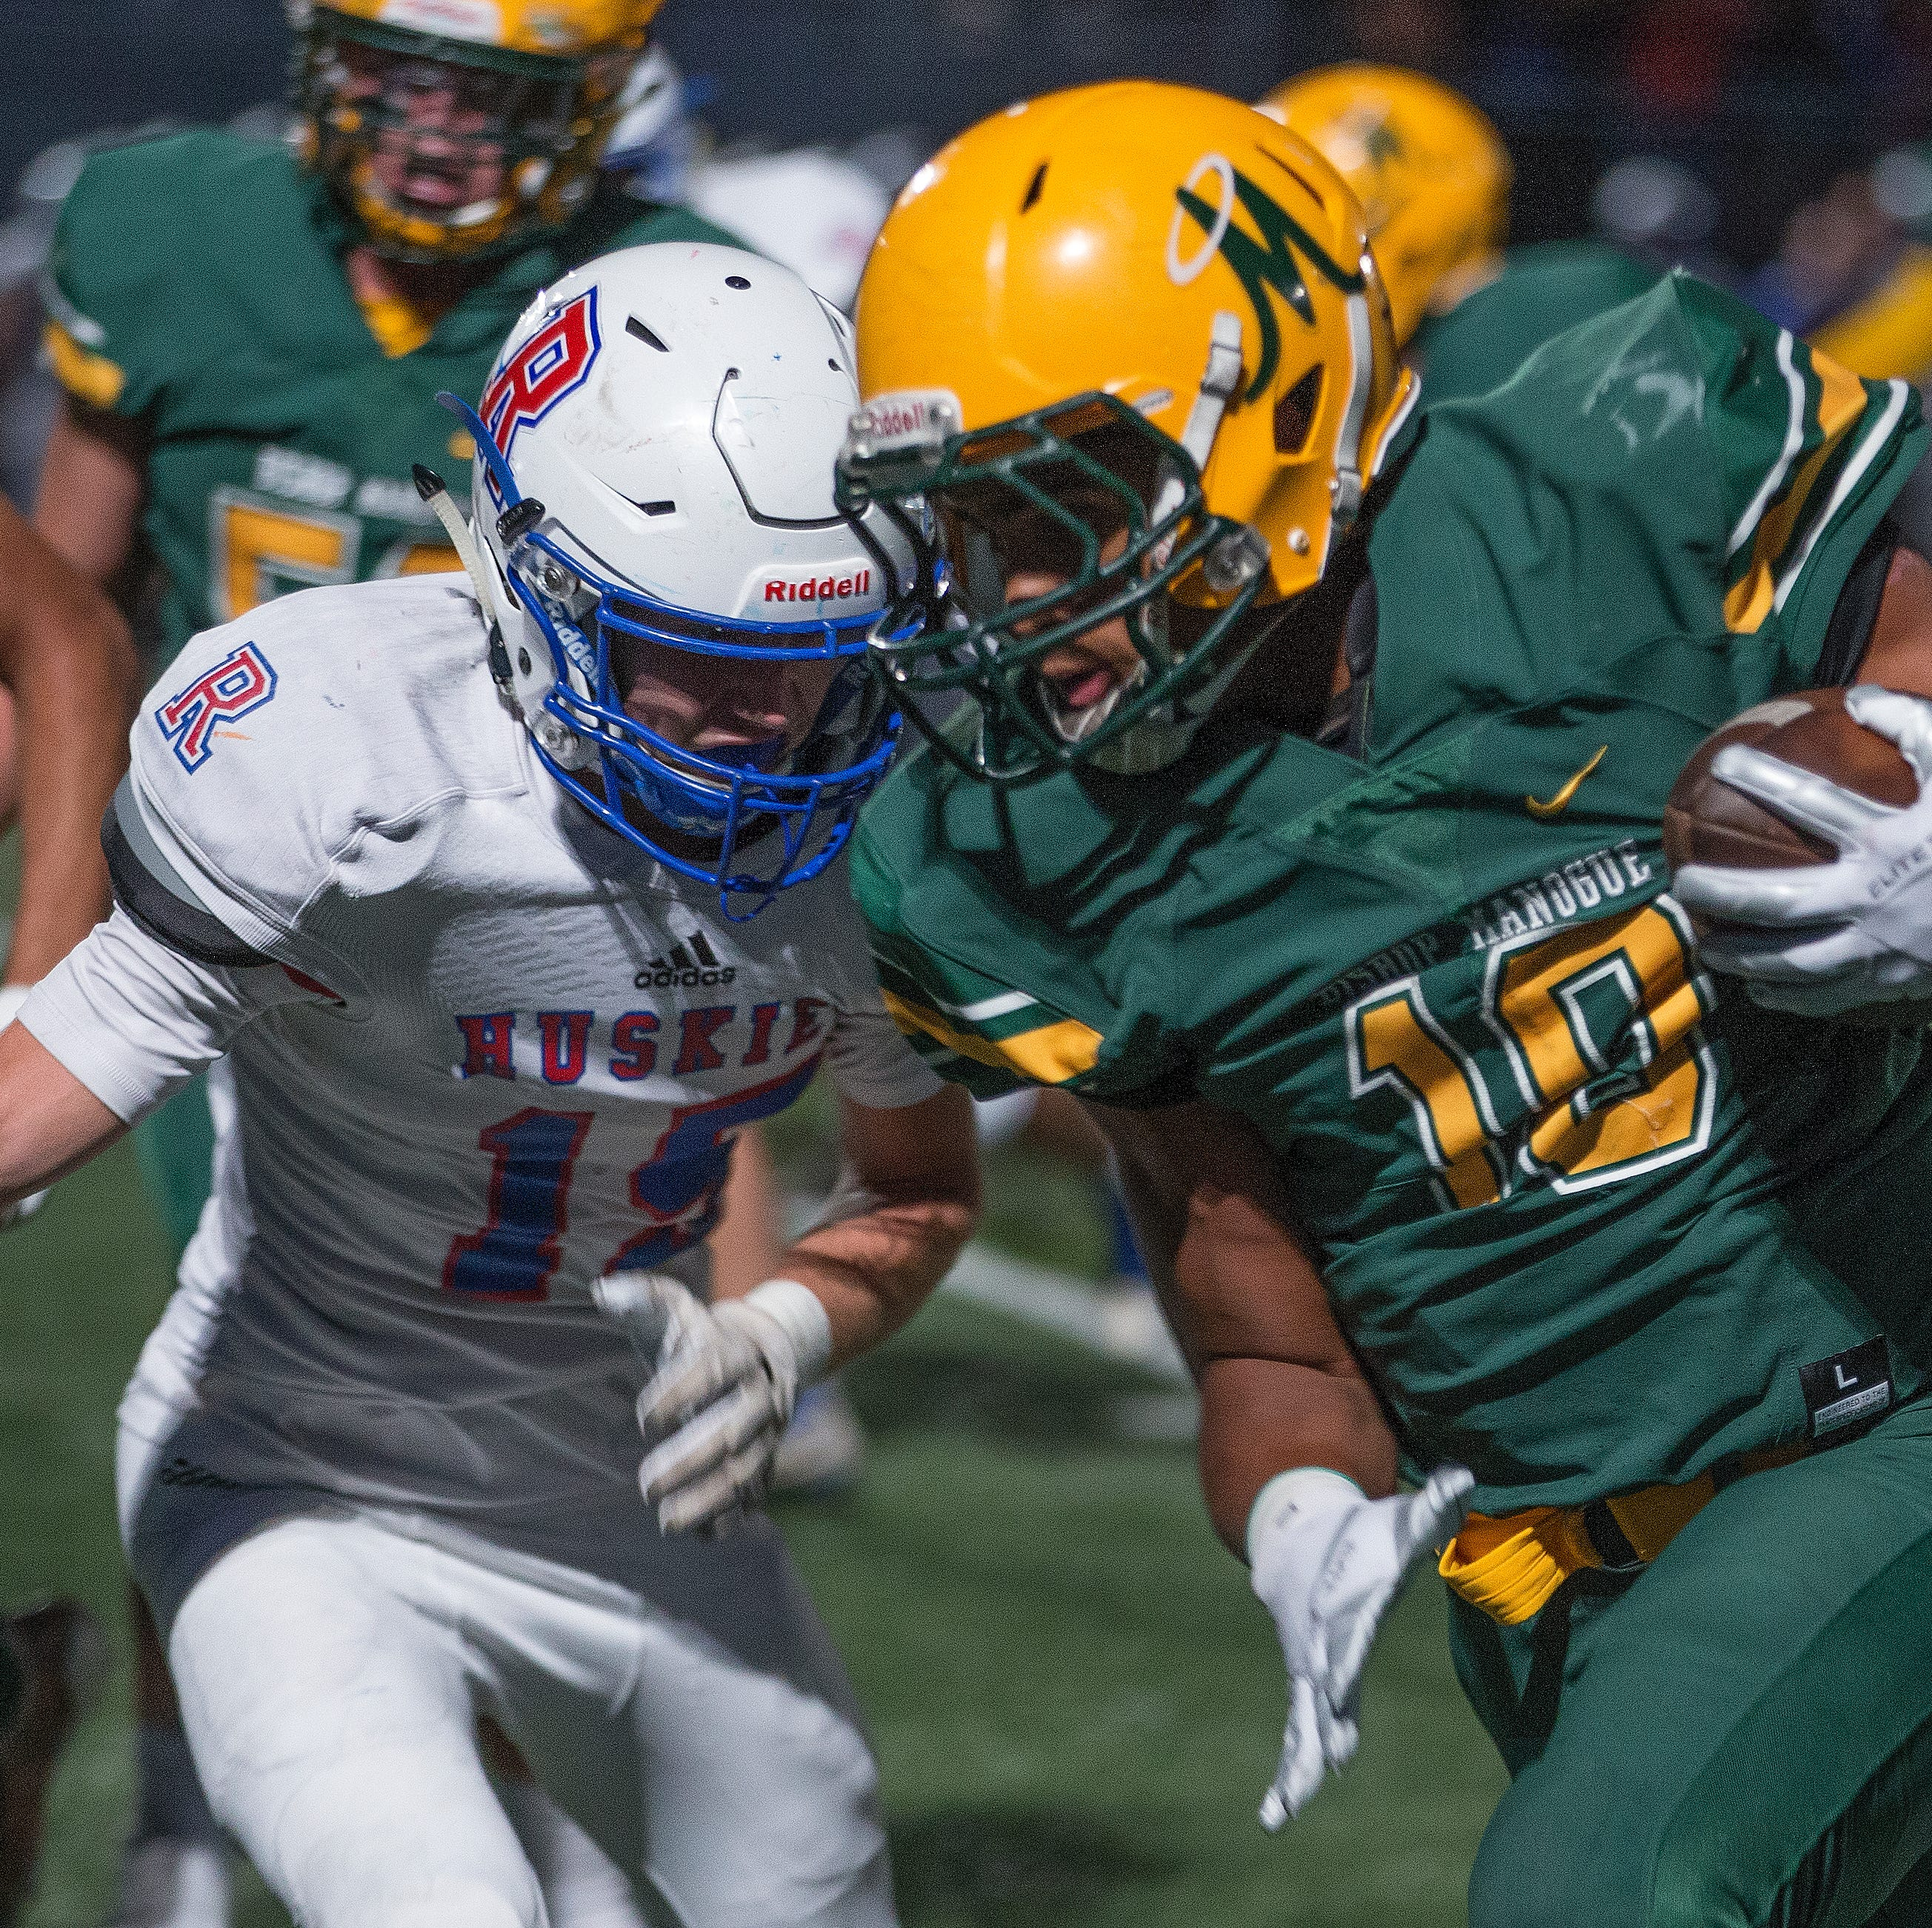 Northern 4A football teams begin league play this week